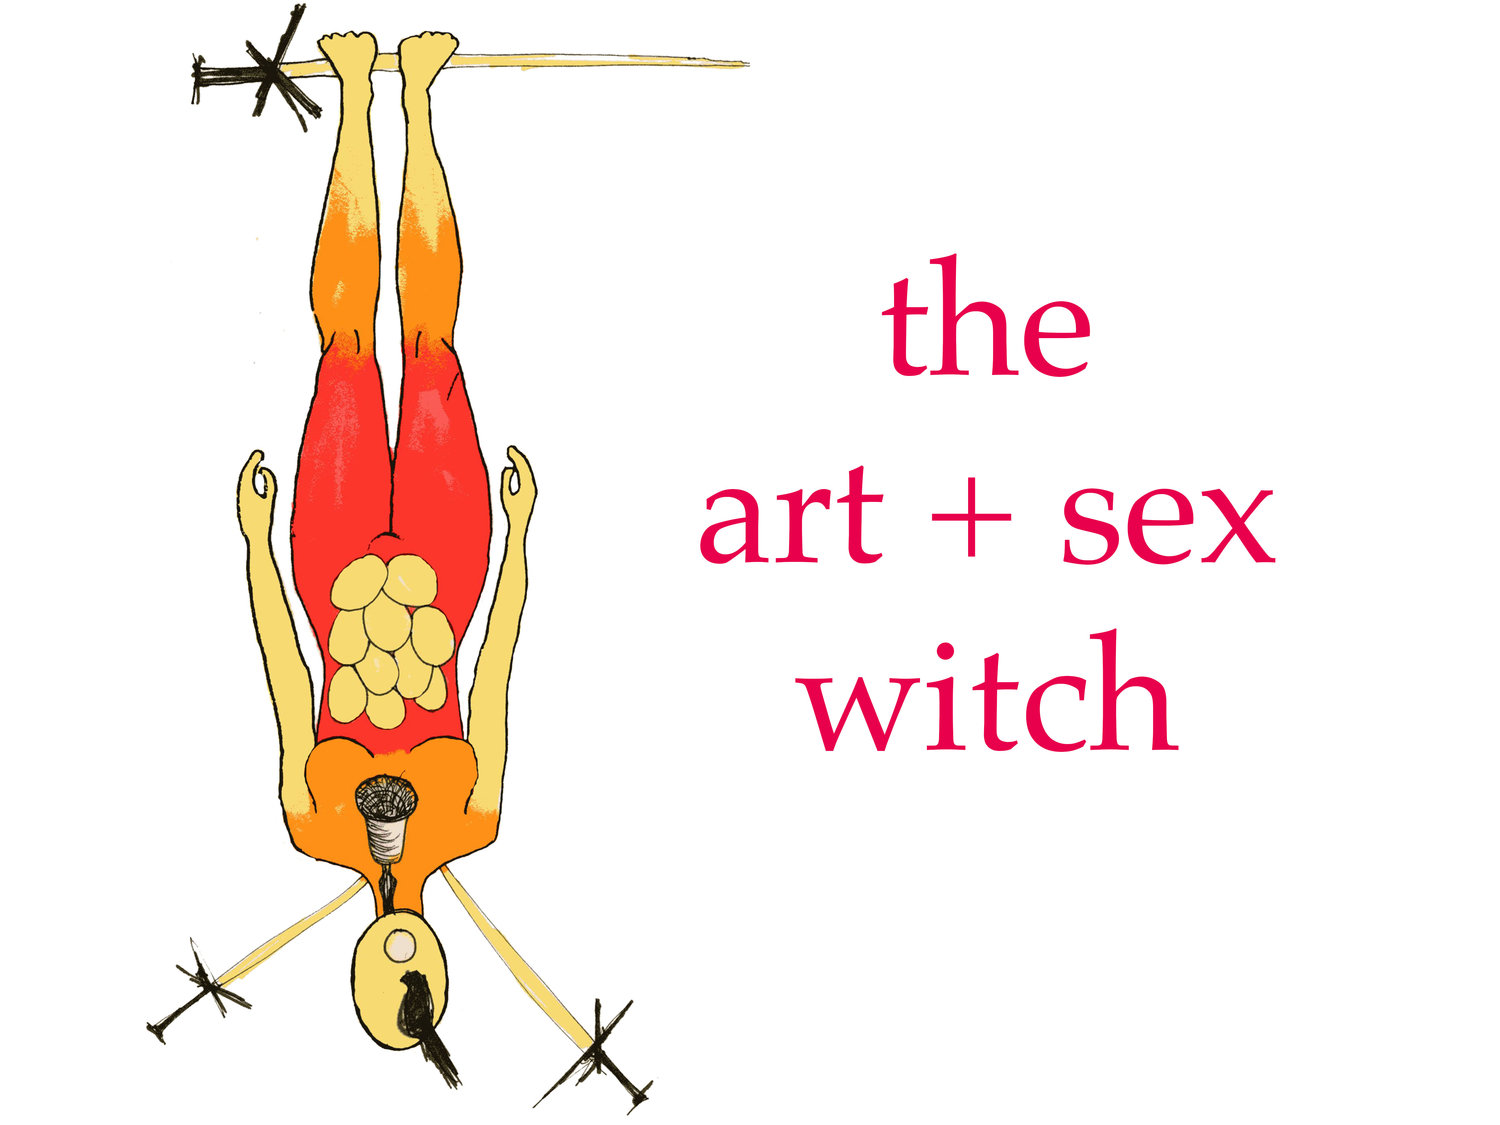 the art + sex witch